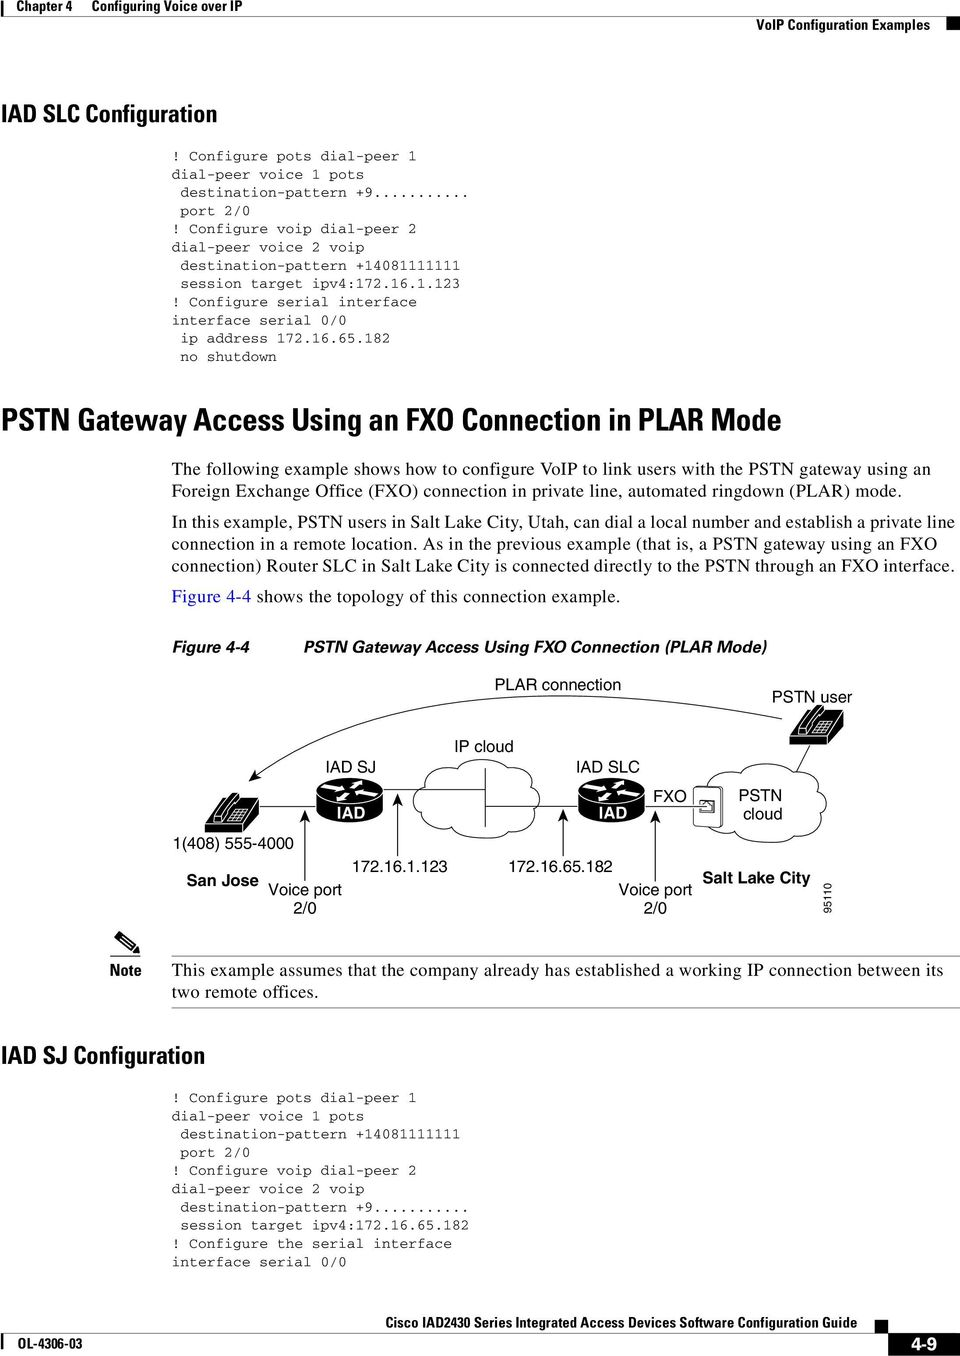 Configuring Voice over IP - PDF